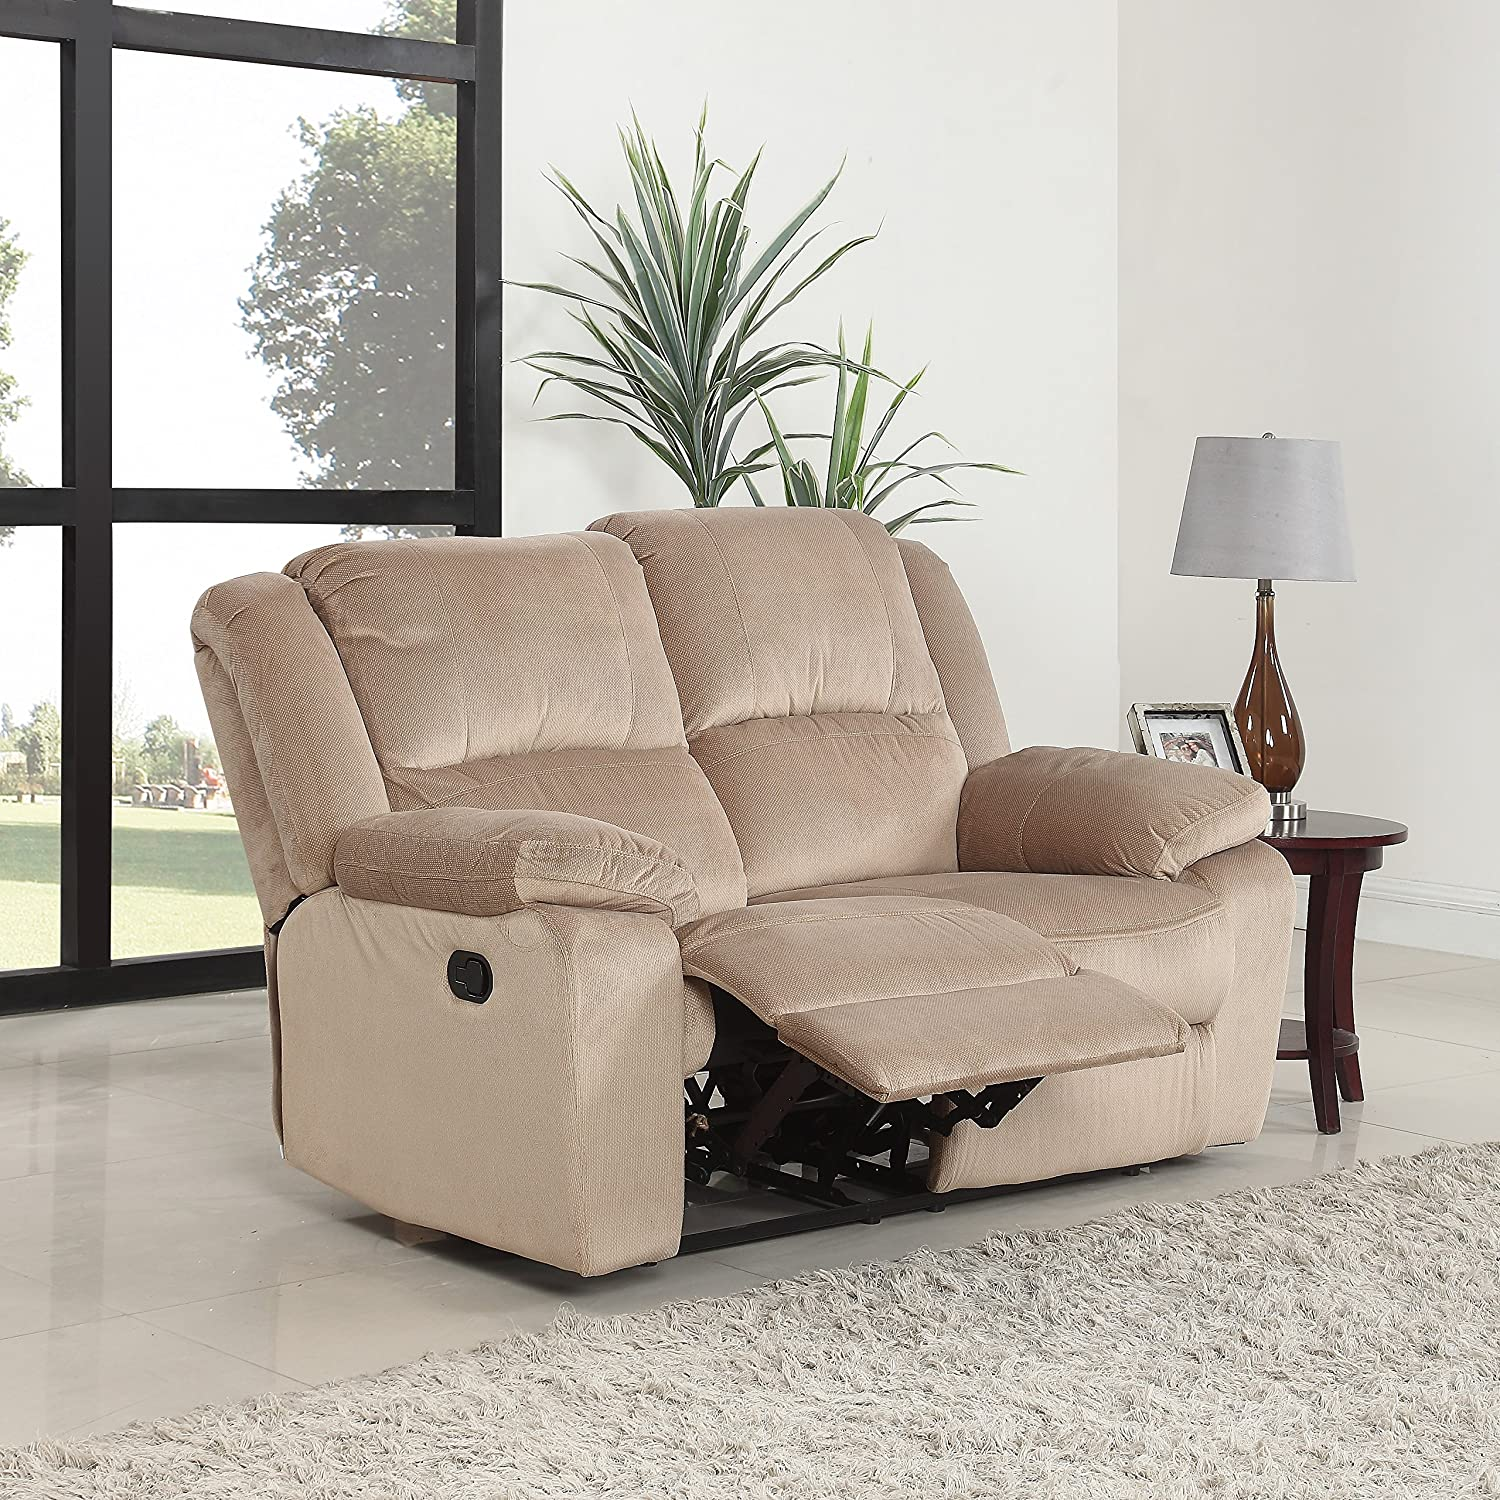 Oversize Traditional Classic Living Room Microfiber Double Recliner Loveseat